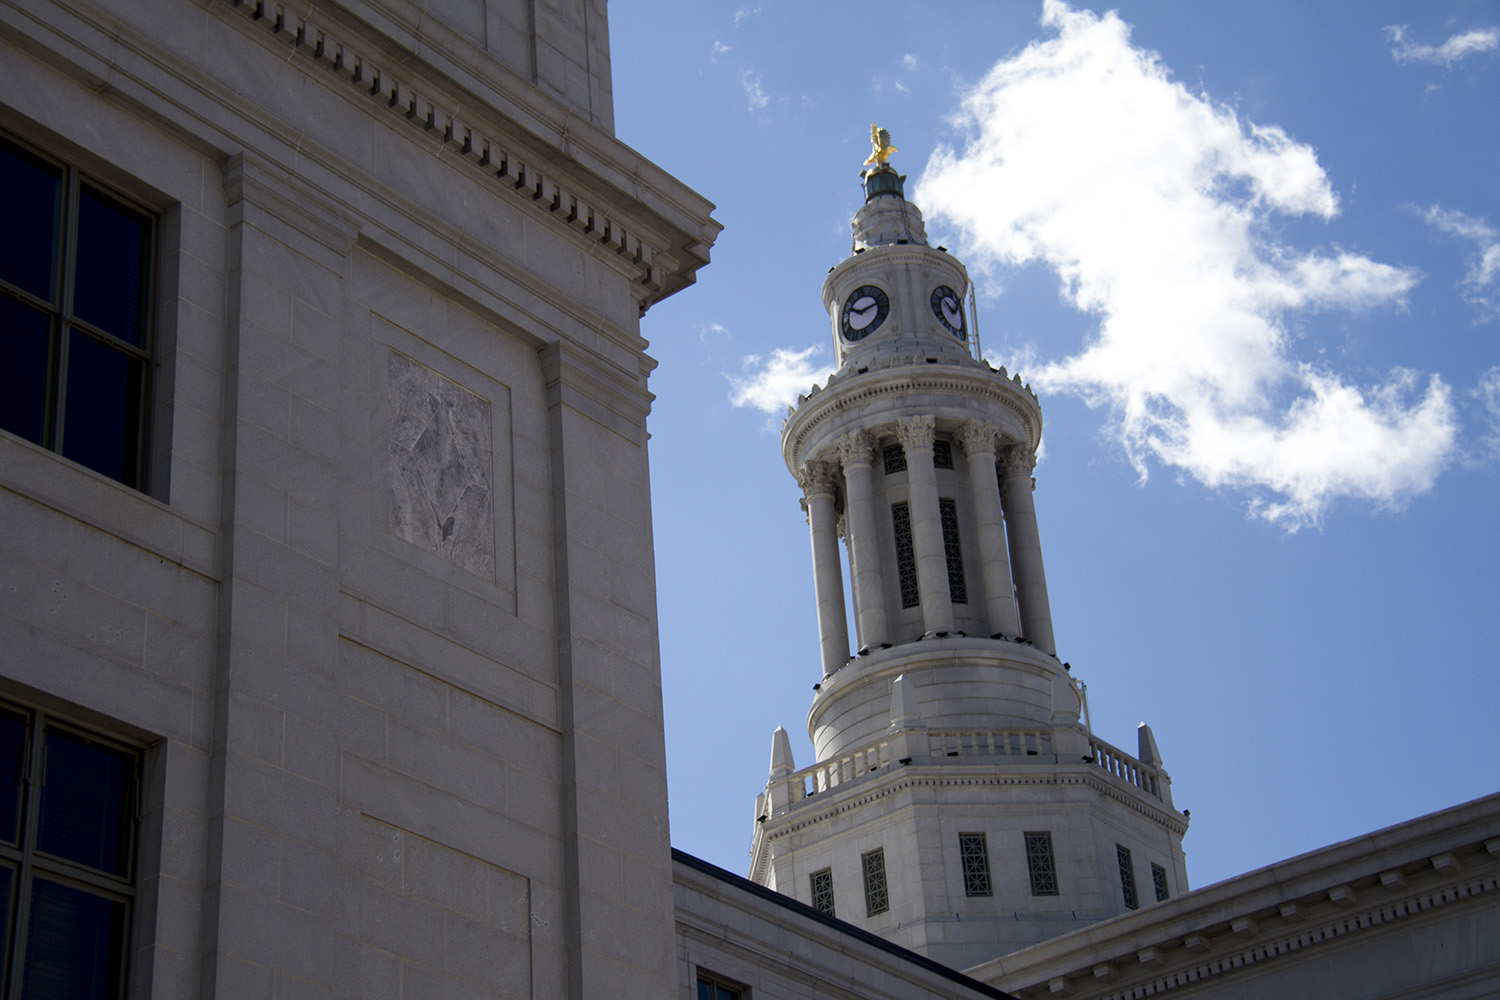 Views of Denver's City and County Building.